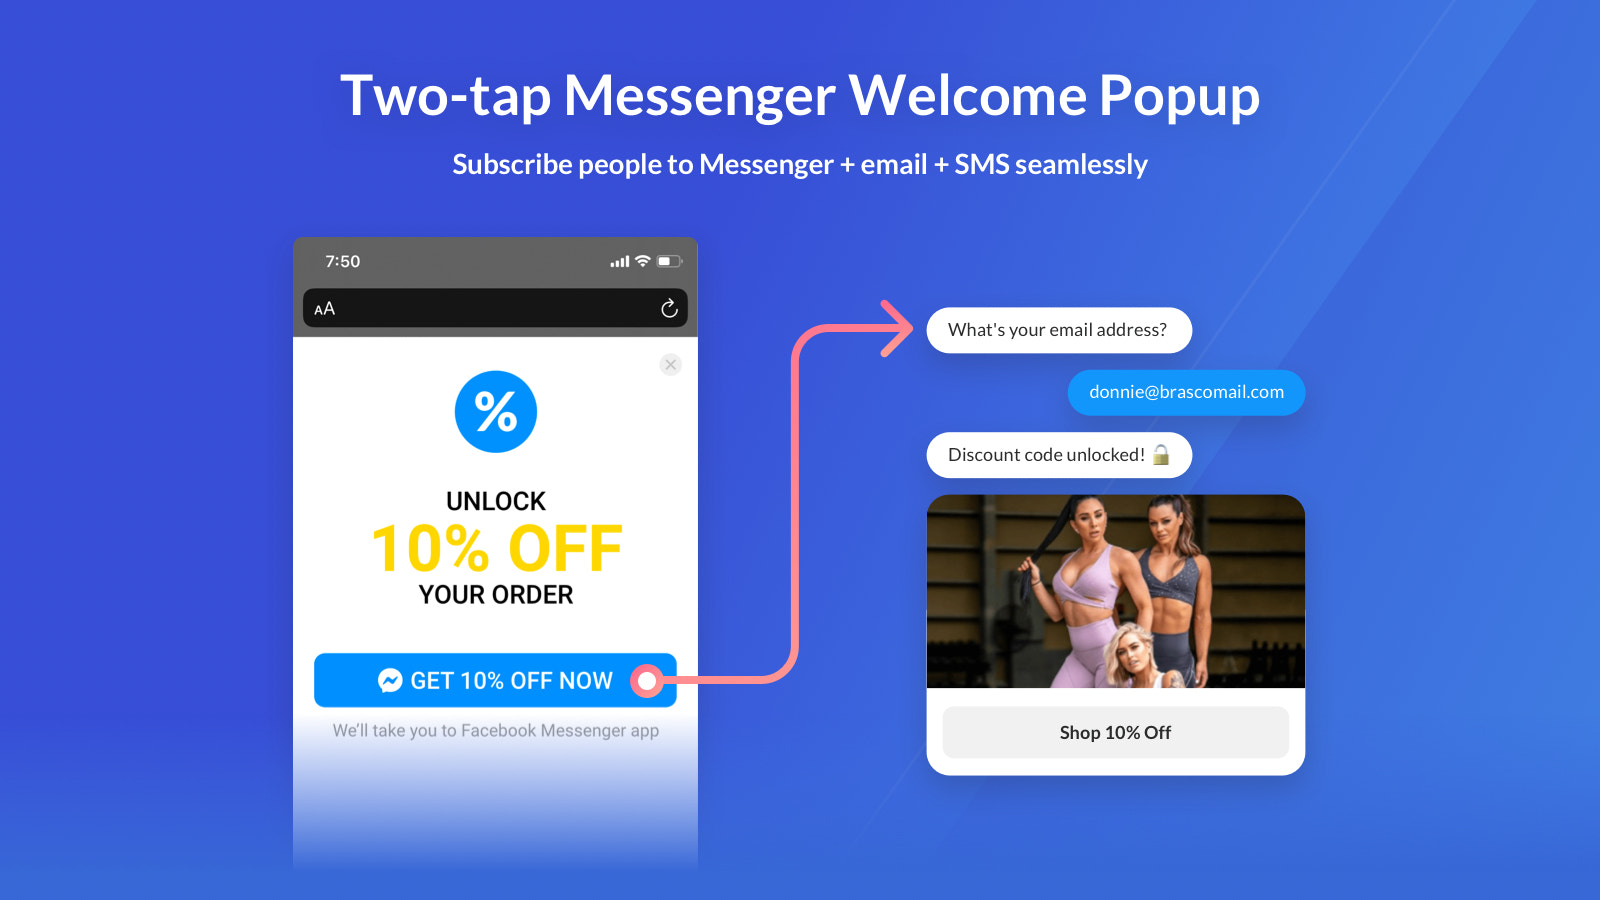 Increase Messenger + email, and SMS opt-ins with Two-Taps